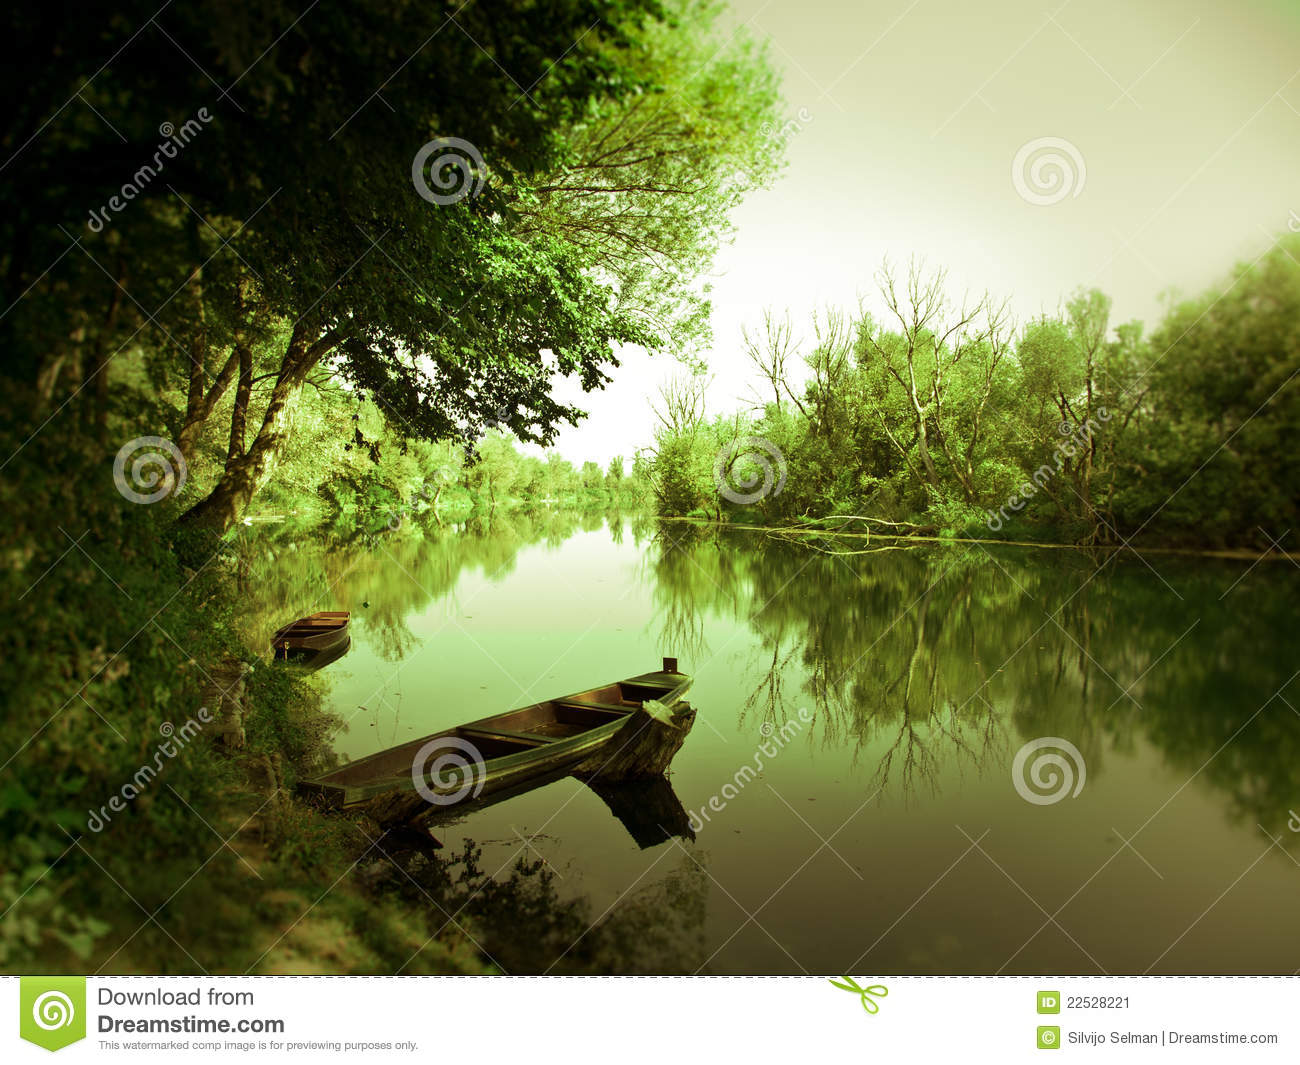 Boat on the river under green shadow